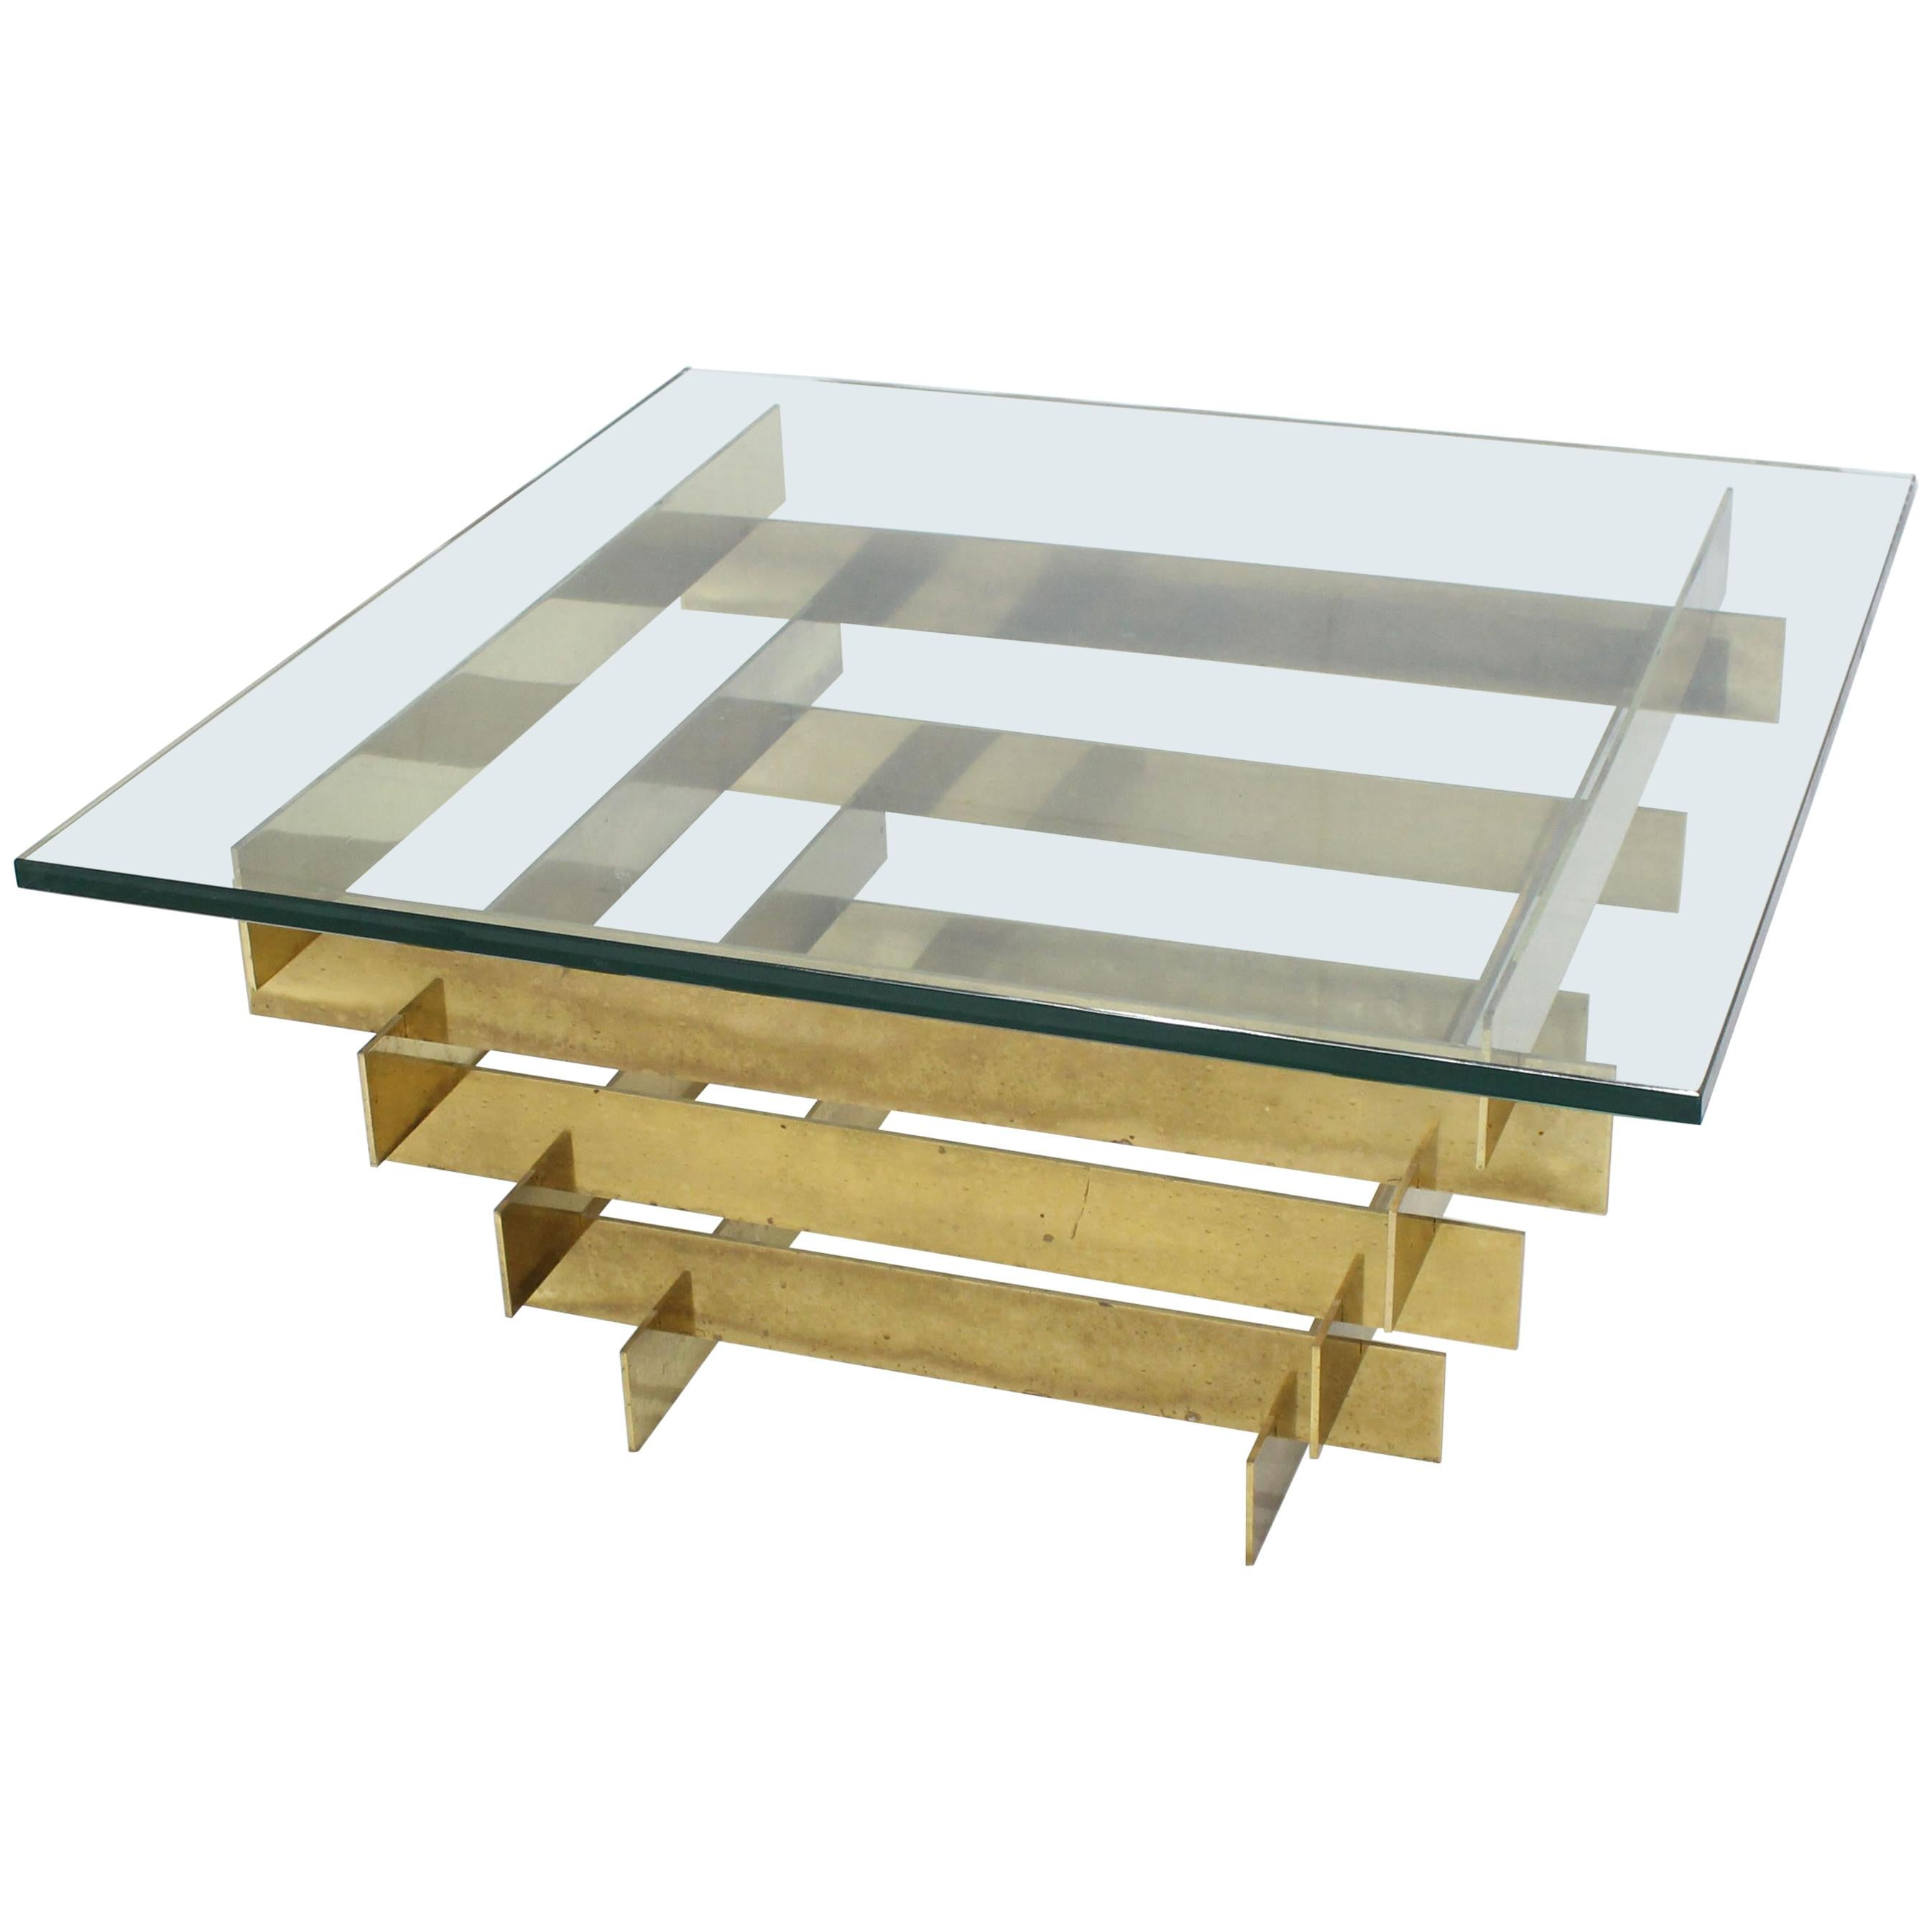 bronze base glass top mid century modern square coffee table